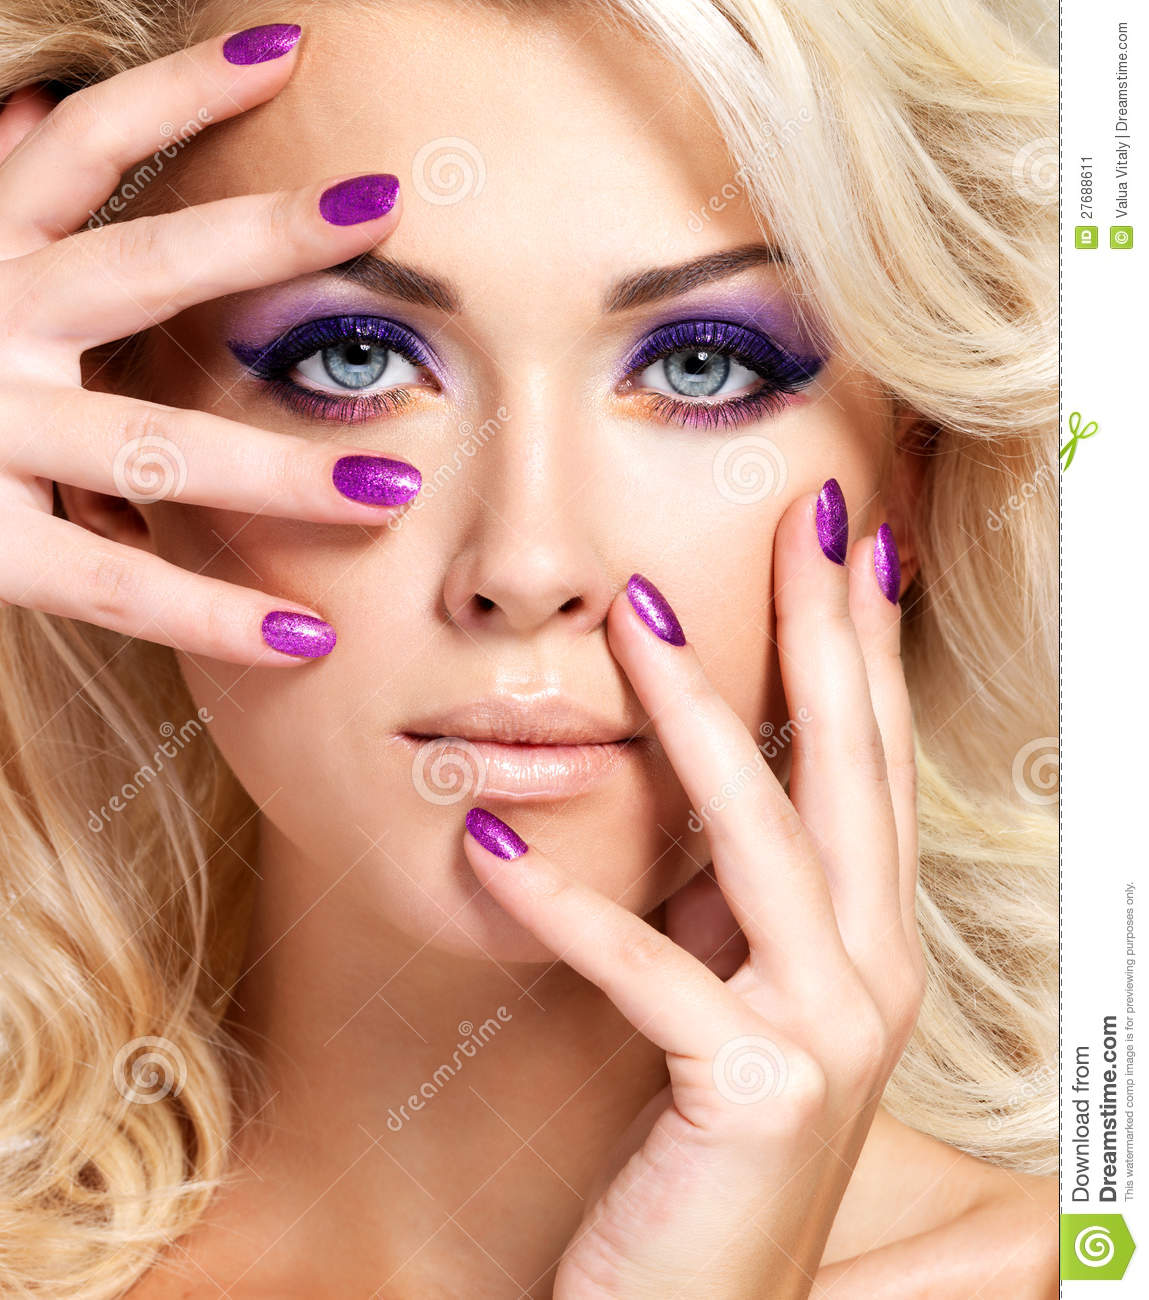 Woman With Beautiful Nails And Eye Makeup Stock Image